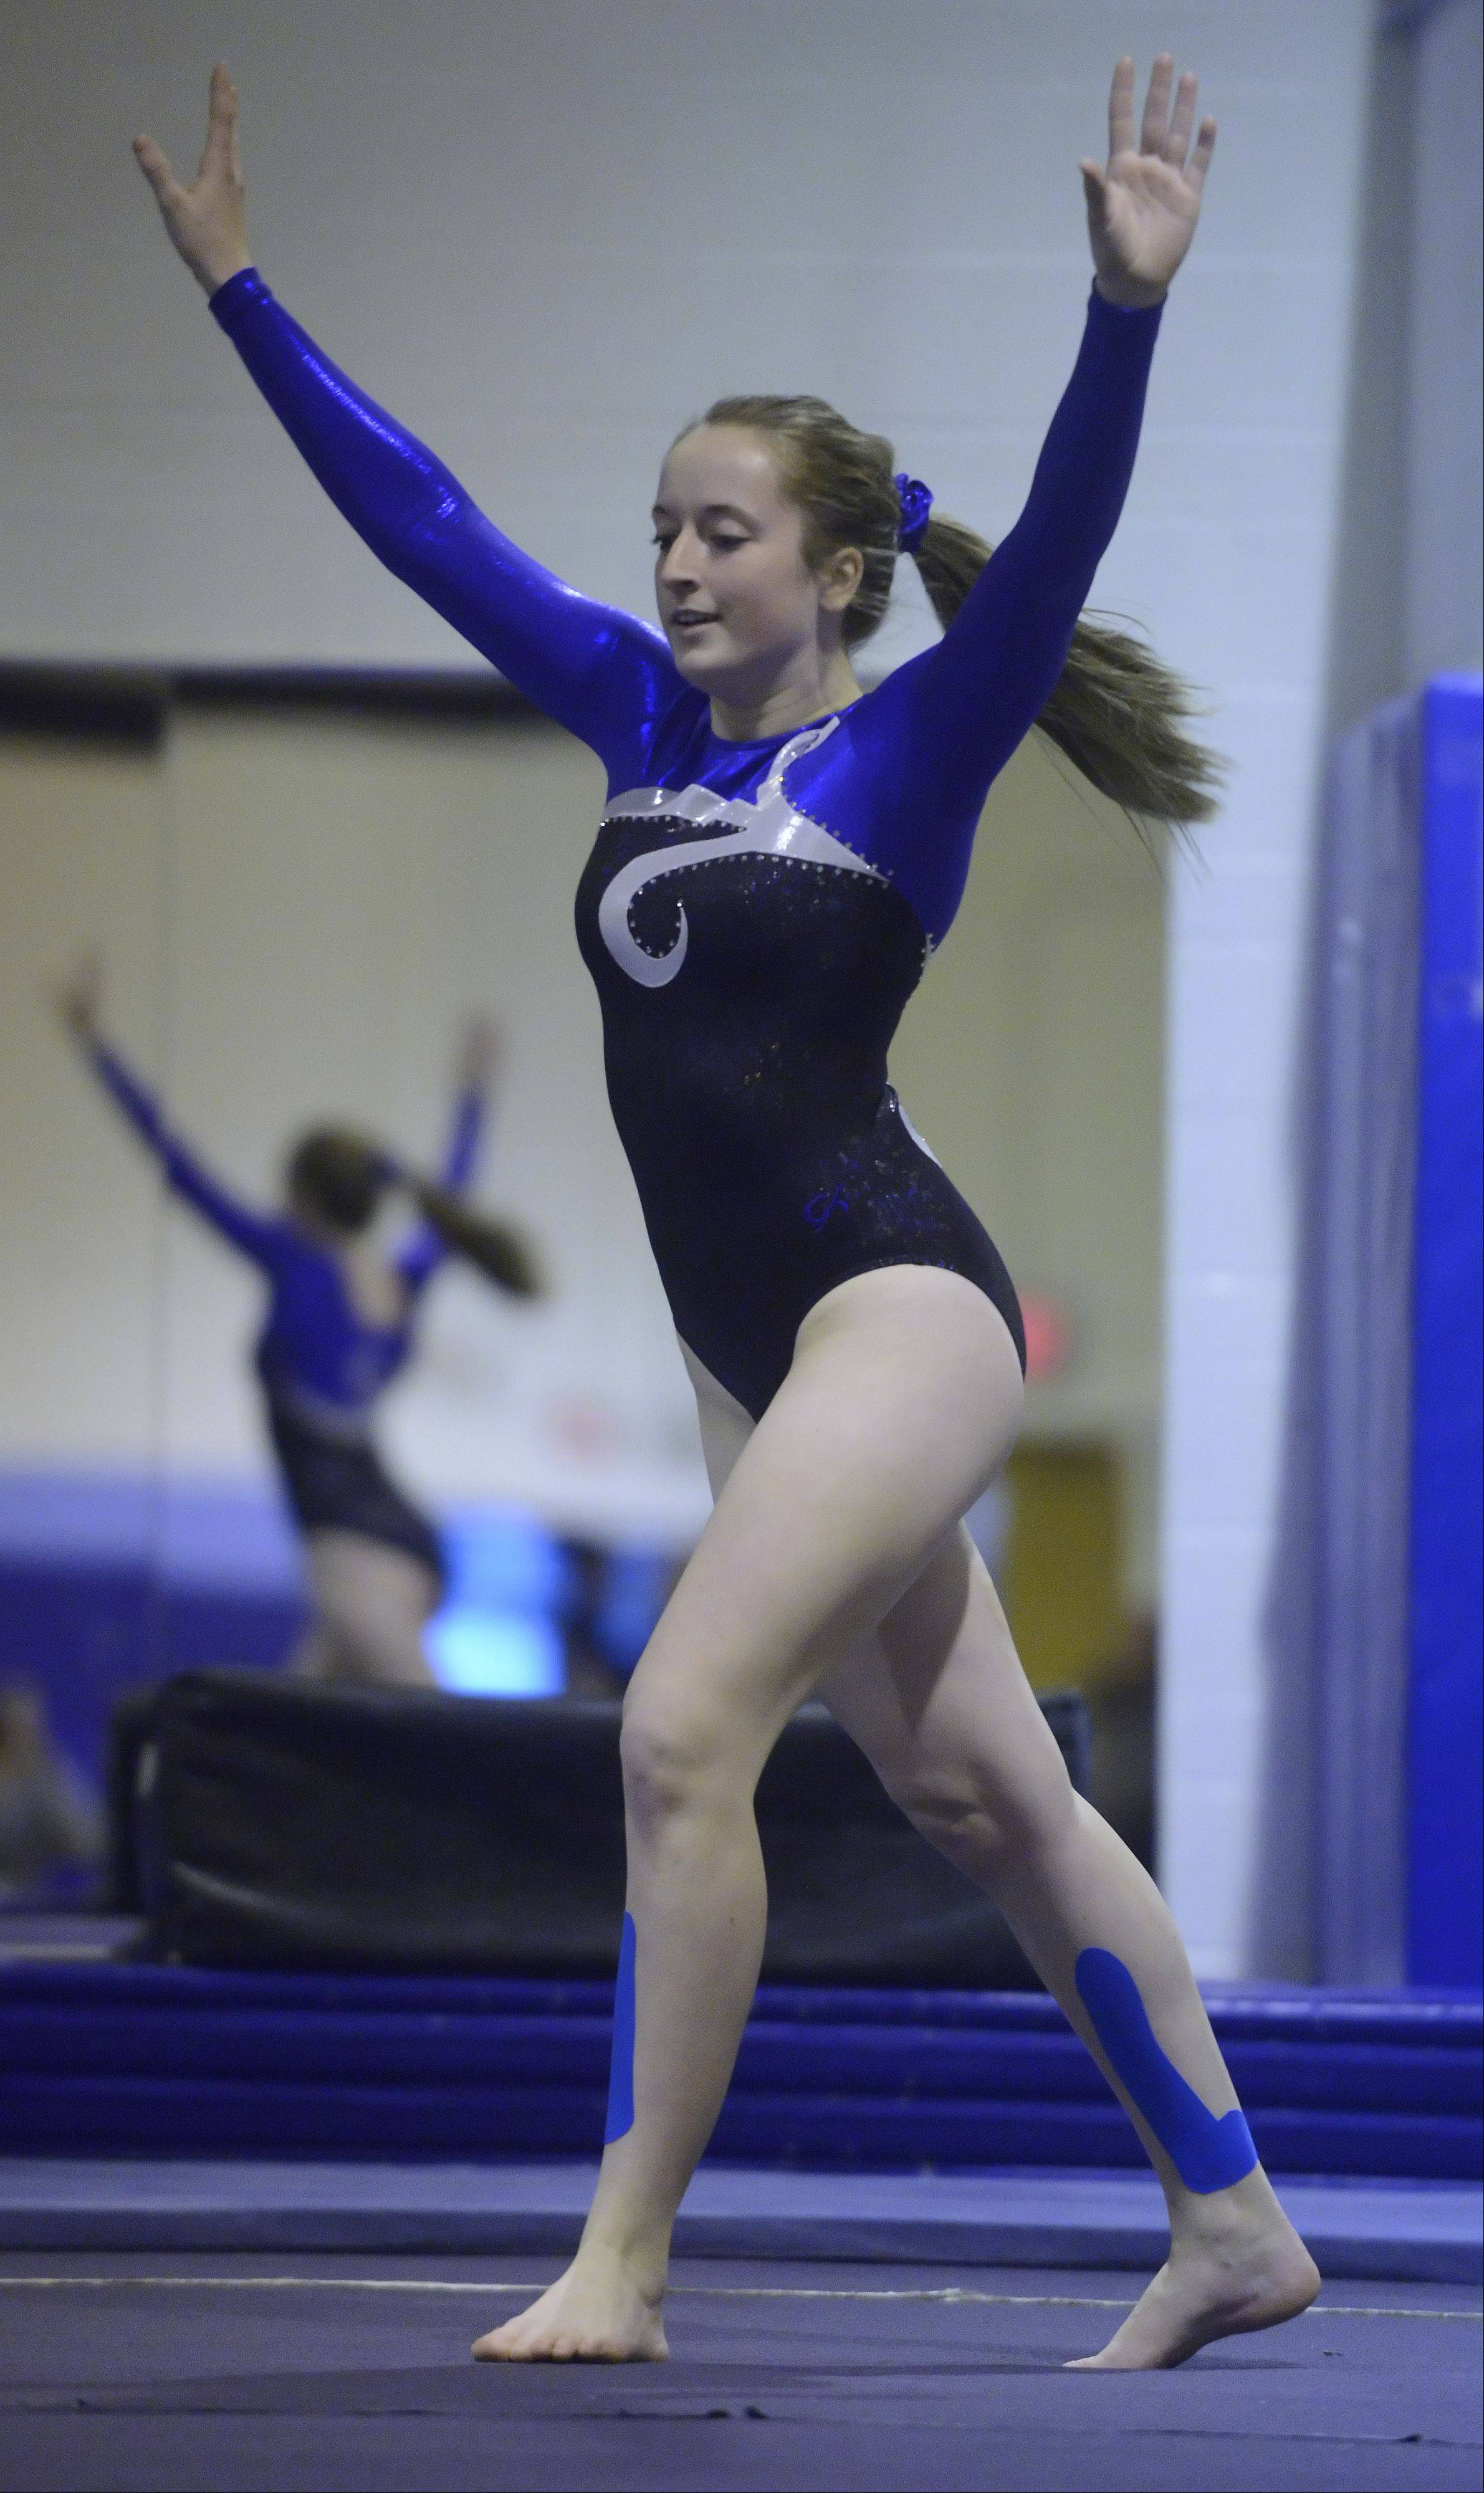 Wheeling's Annah Meintzer performs her floor exercise routine during Wednesday's gymnastics meet at Prospect.